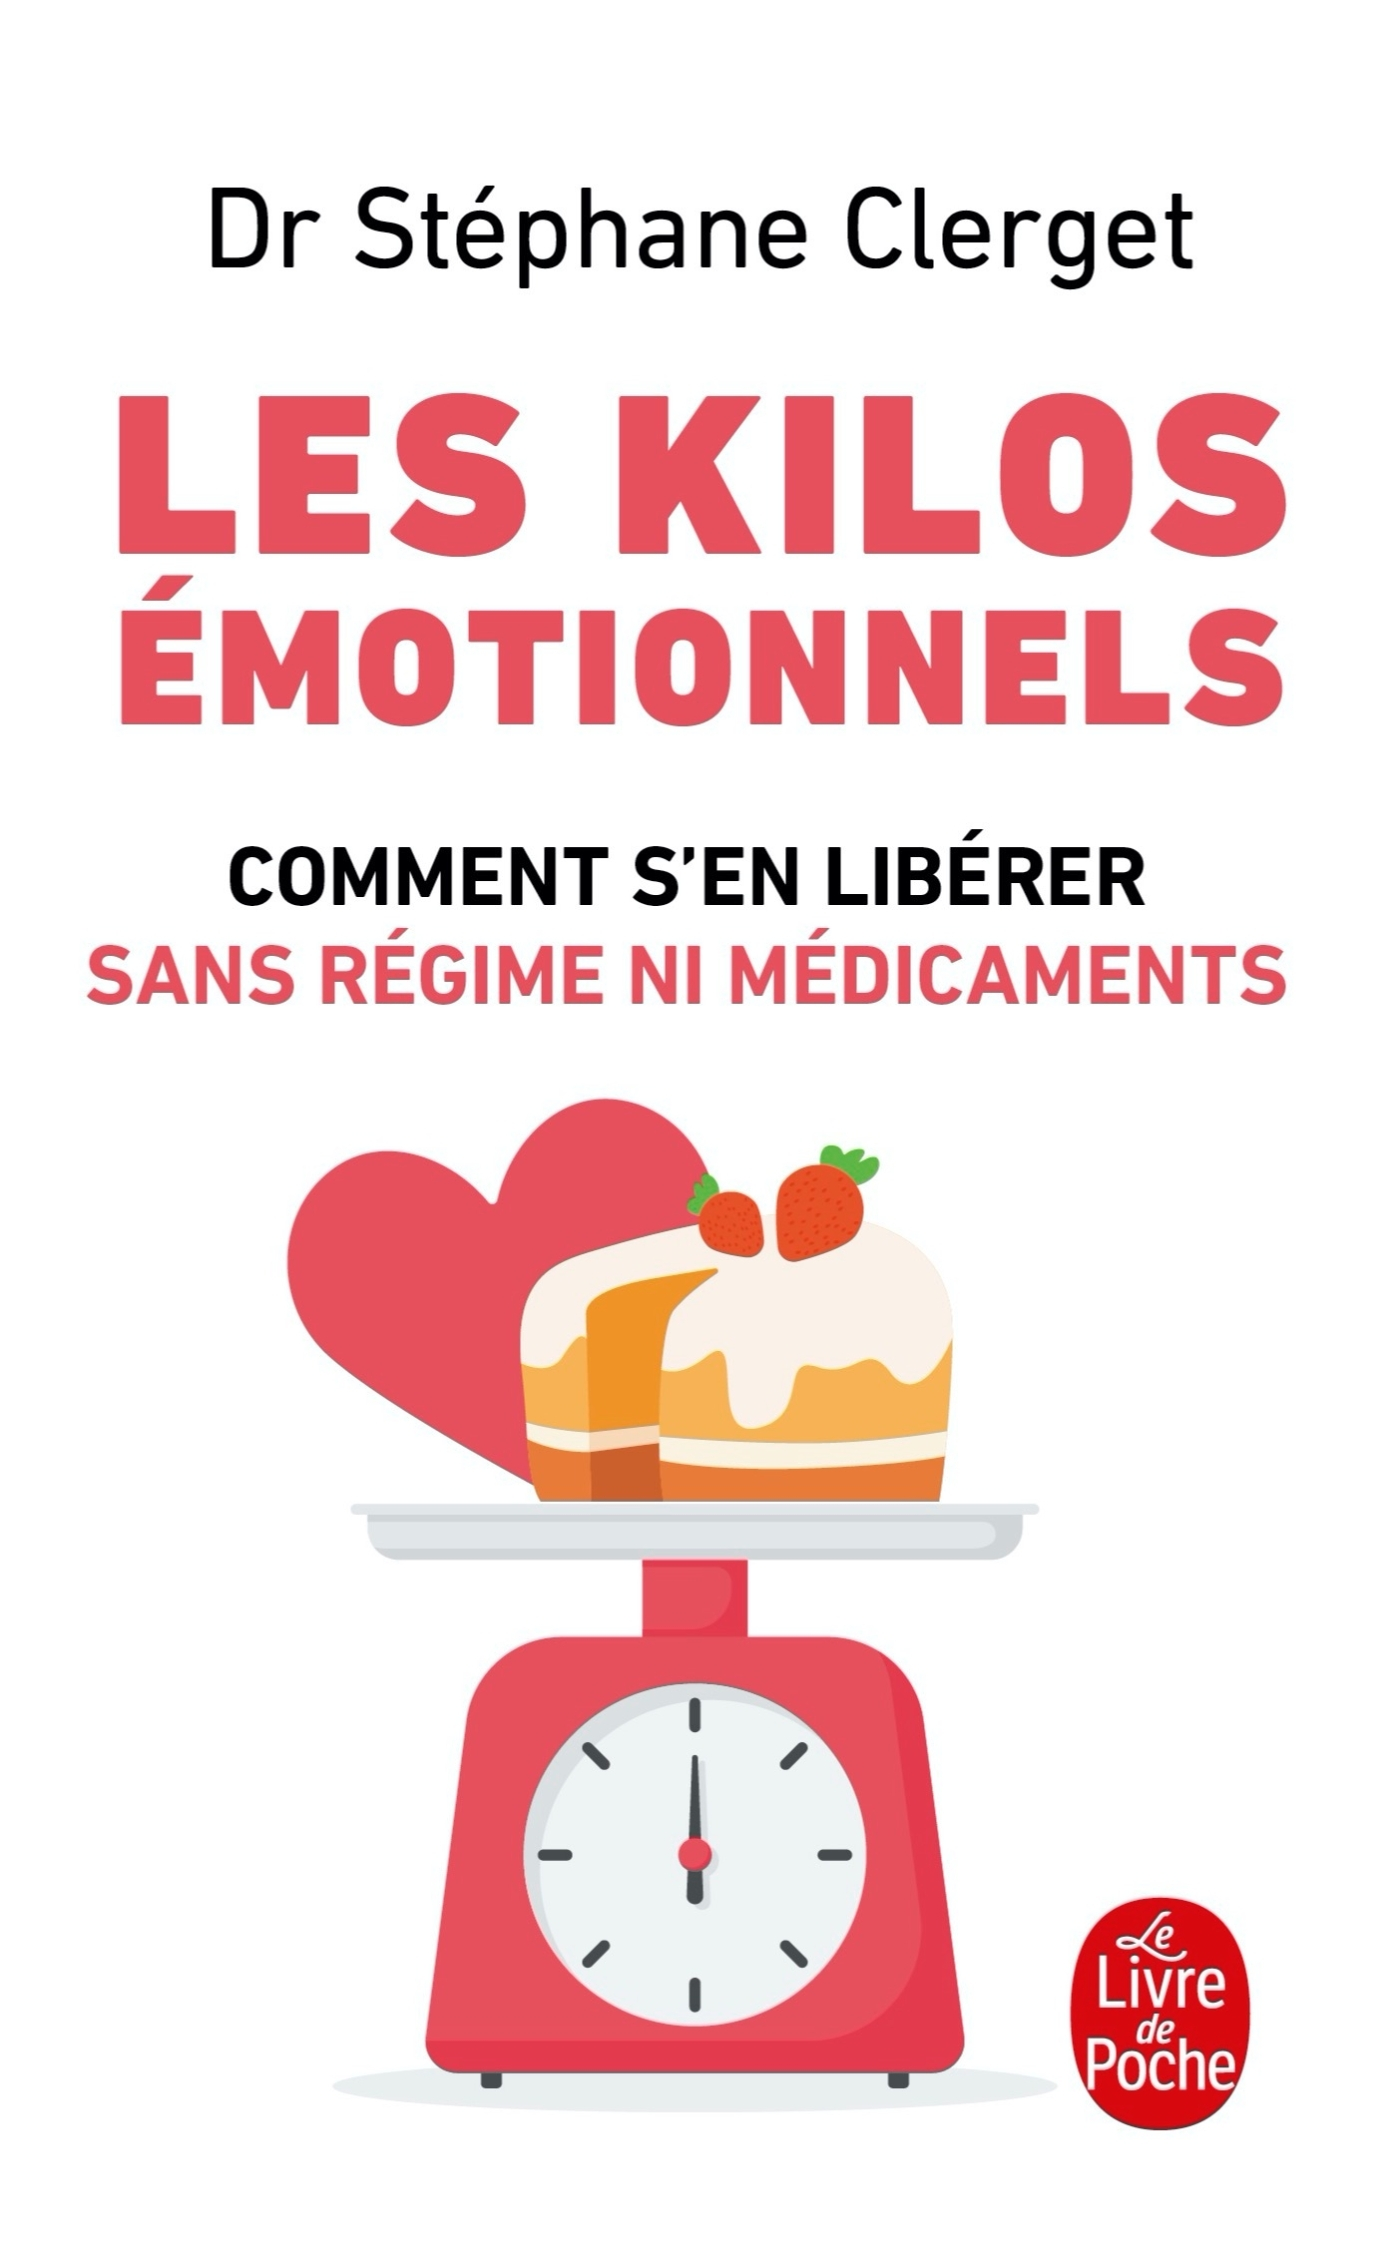 LES KILOS EMOTIONNELS